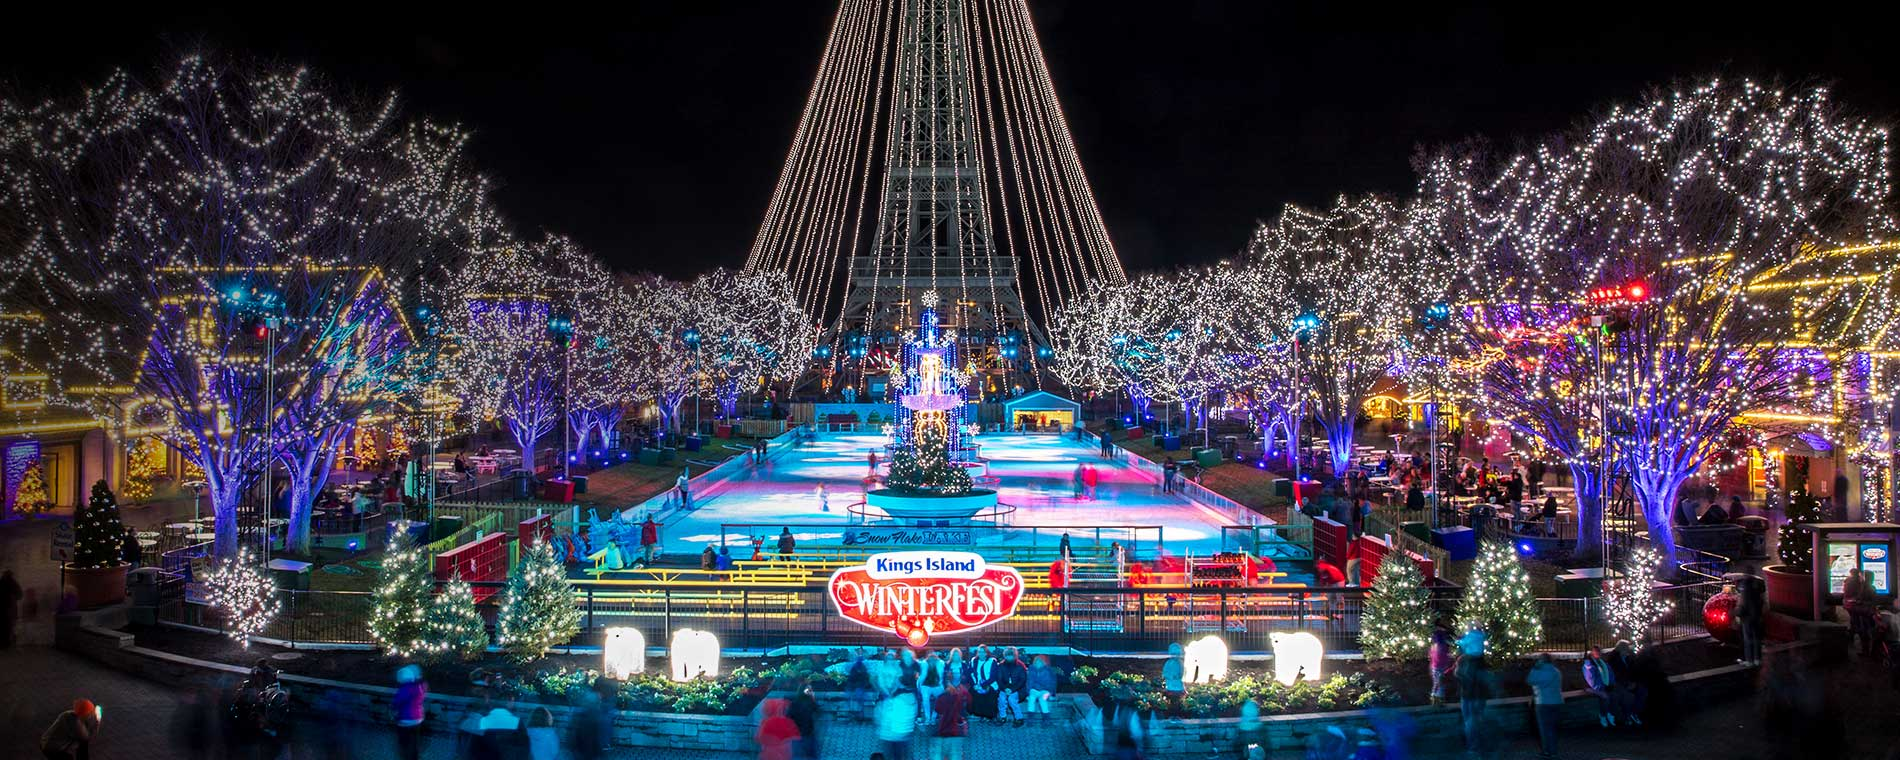 Kings Island WinterFest Holiday Event